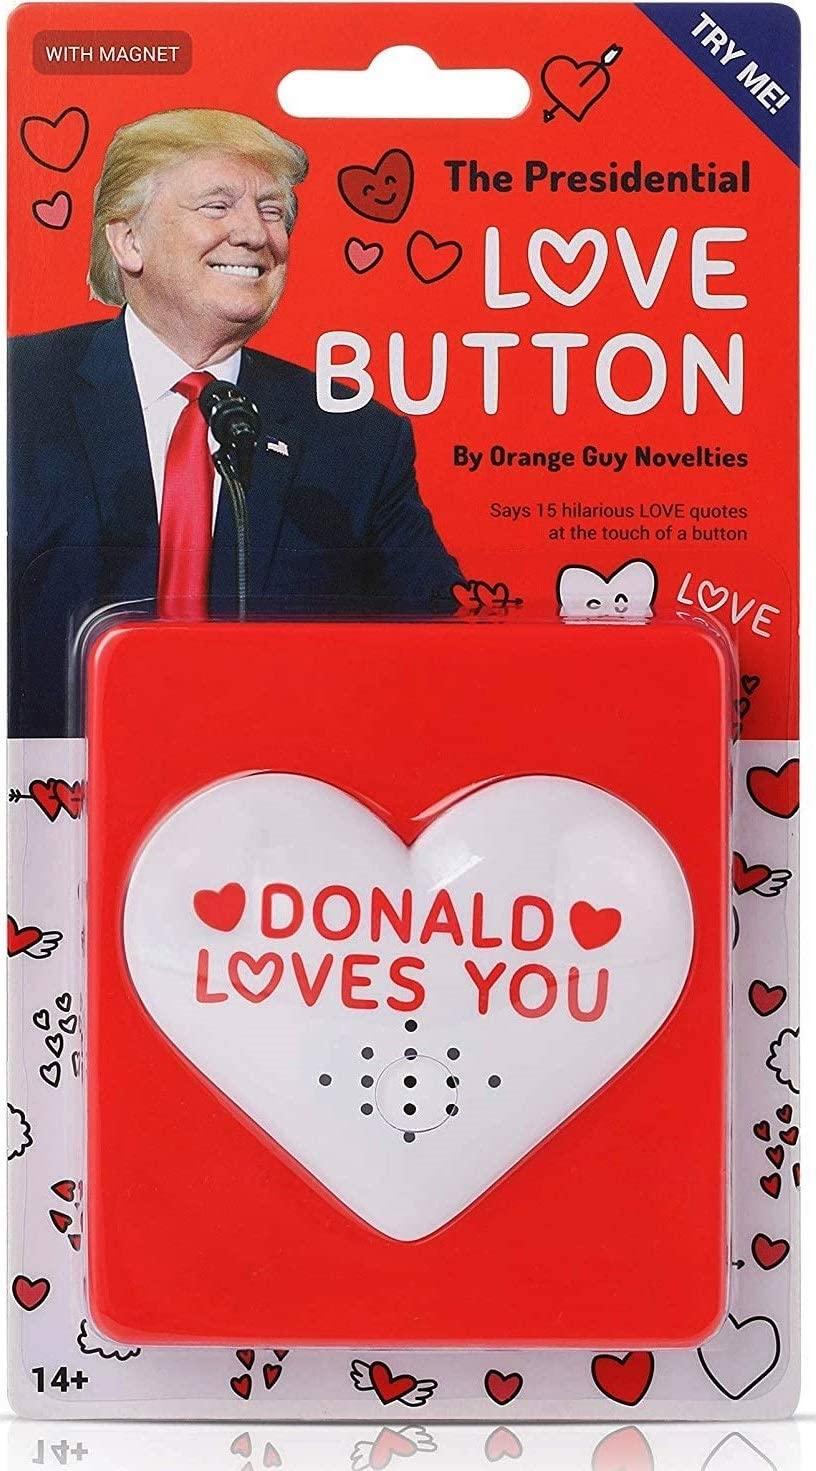 Donald Trump Talking Love Button - Says 15 Different Funny Love Quotes in His Voice - Hilarious Romantic Gag Gifts for Men or Women - Novelty Merchandise - Batteries Are Included Inside